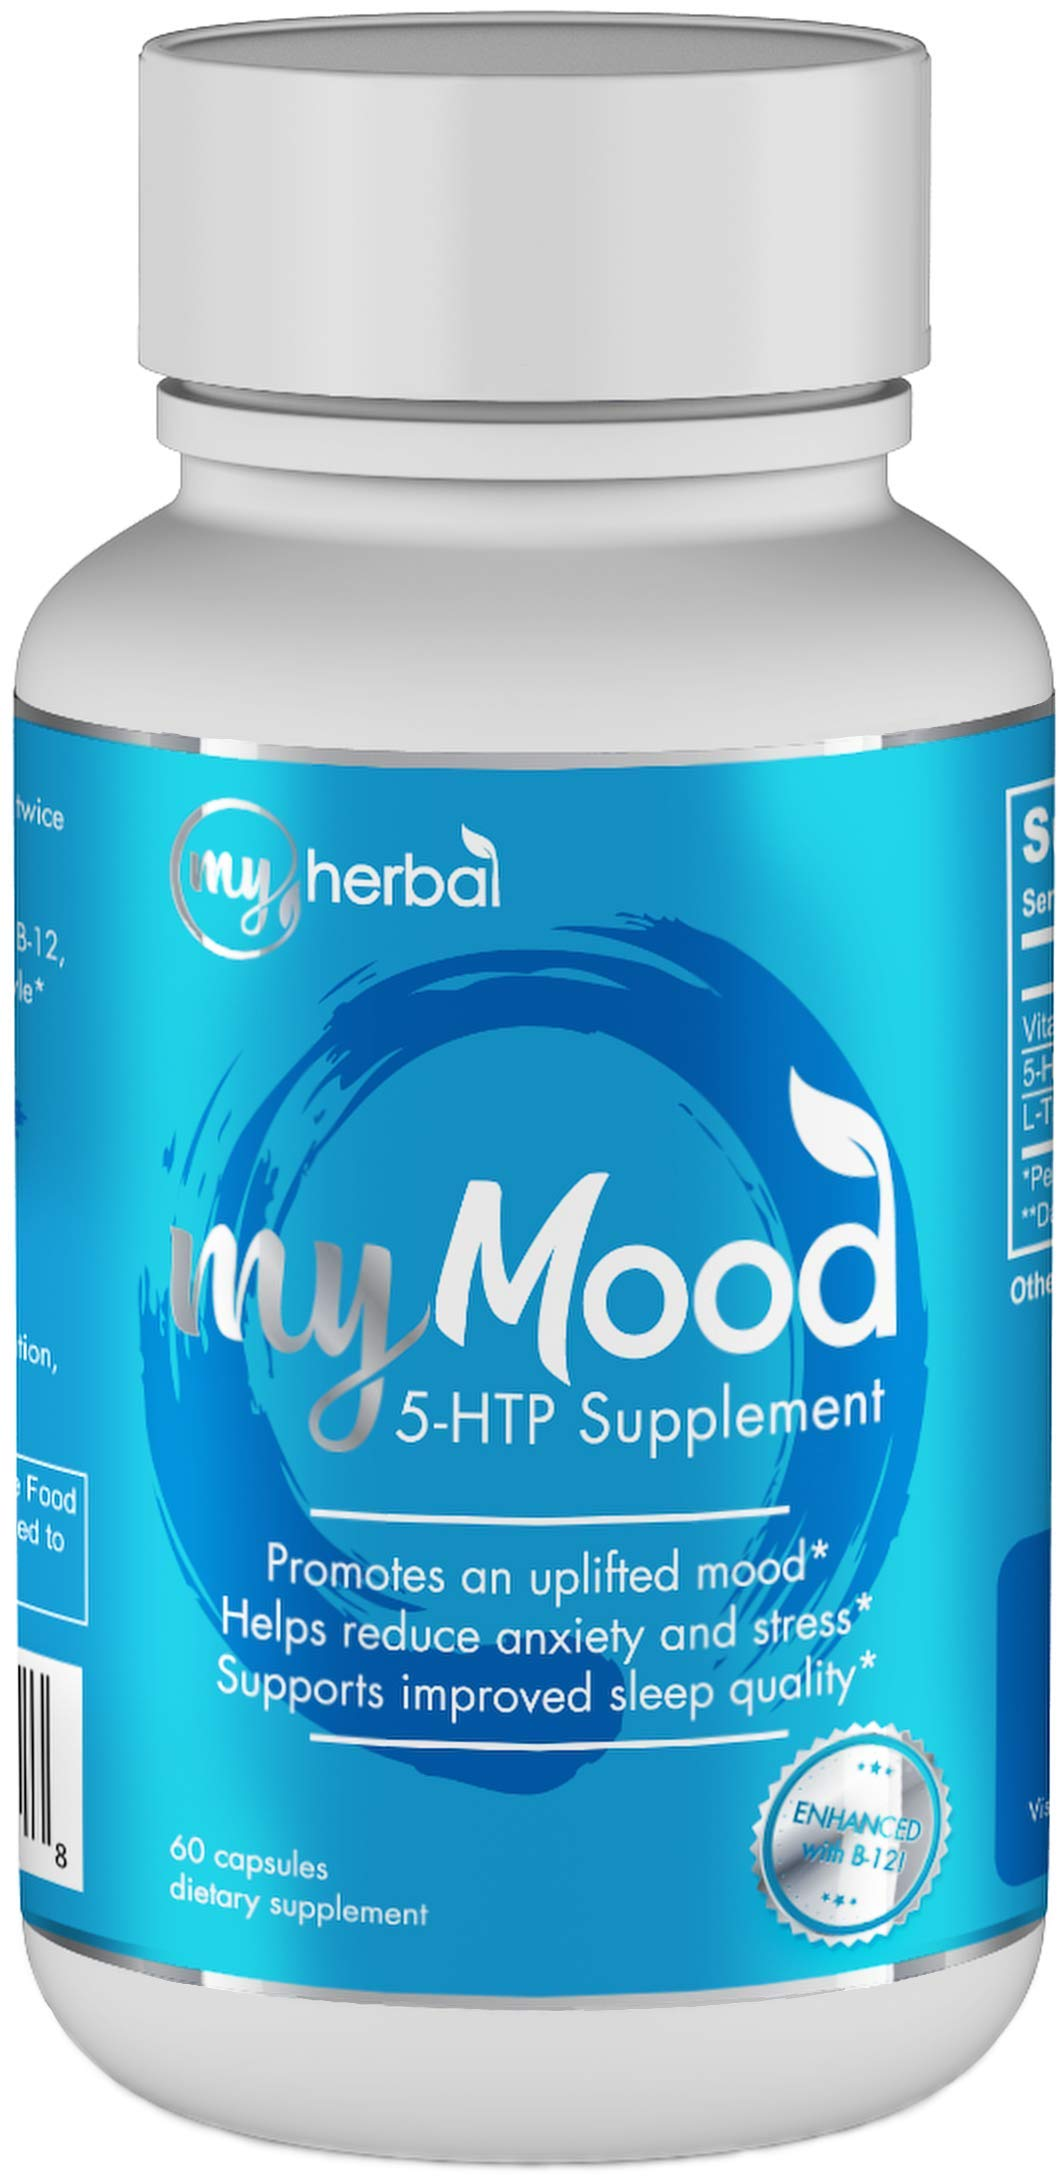 My Mood 5-HTP Premium Supplement 100mg, Natural Support for Positive Mood, Anxiety Relief, Stress Management, Improved Sleep | Enhanced with Vitamin B12 and L-Theanine, 60 Vegetable Capsules